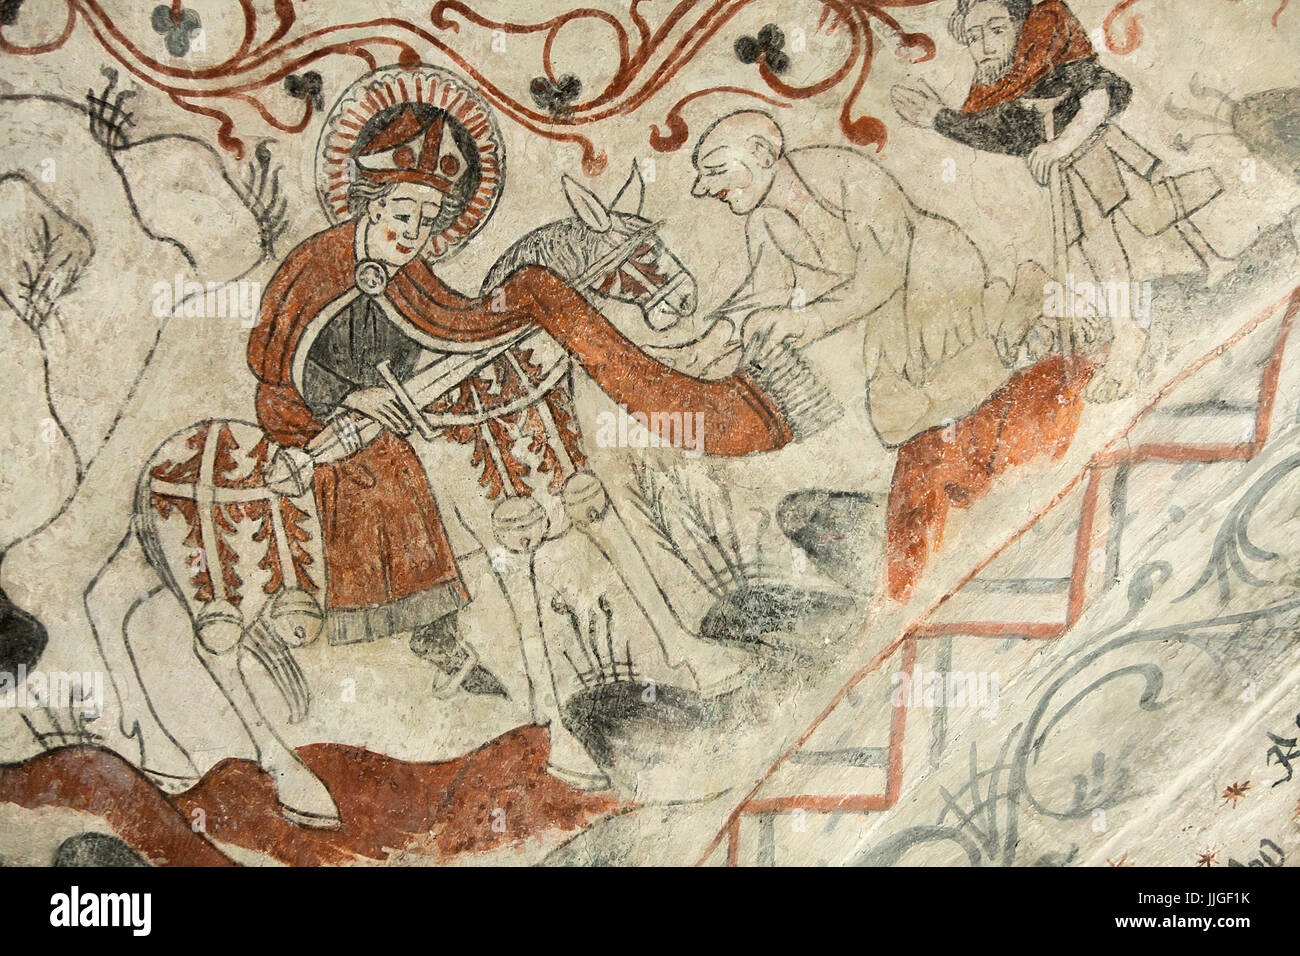 Danish medieval religious fresco in the 13th century Gothic style Tuse Church depicting Saint Martin of Tours  sharing Stock Photo